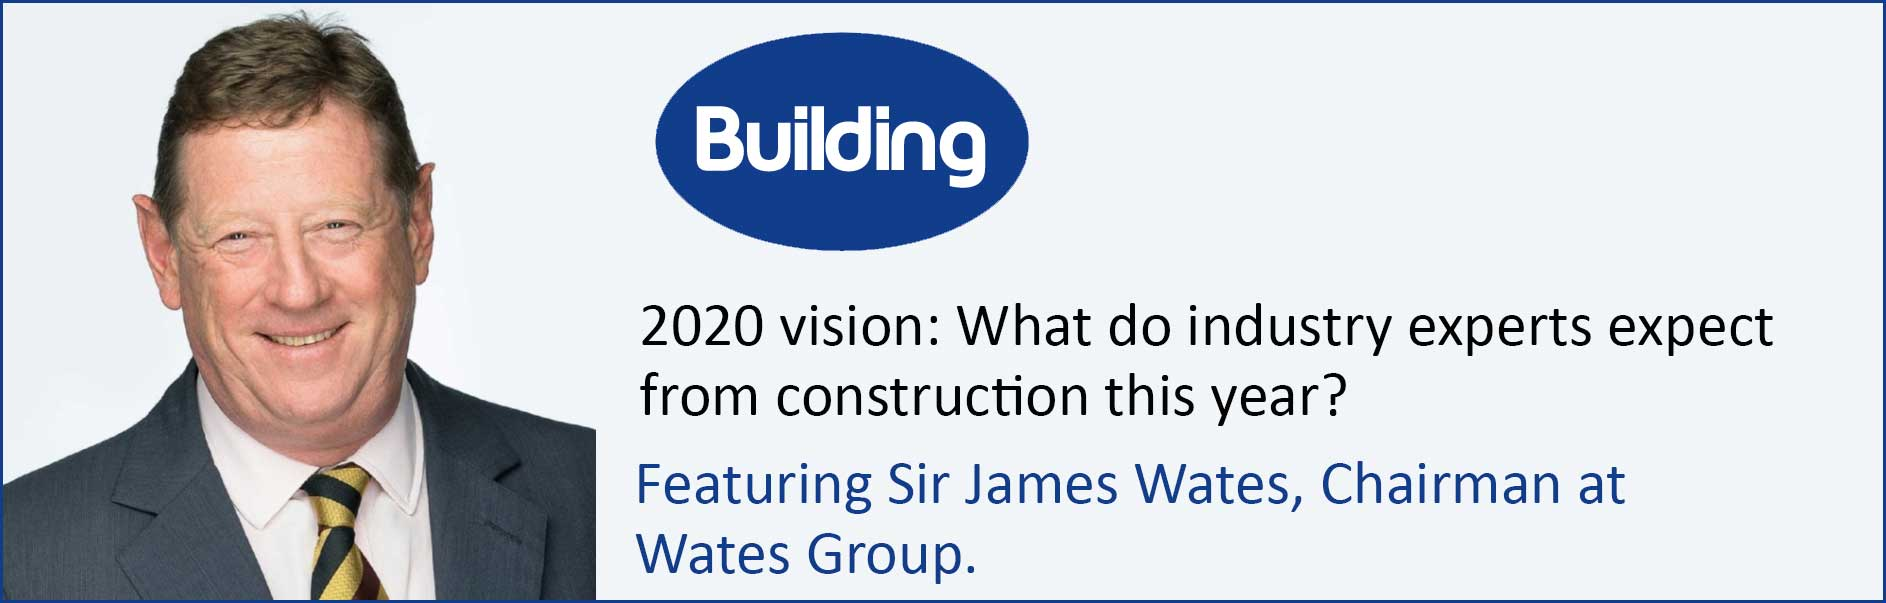 Building - featuring Sir James Wates  Chairman of Wates Group